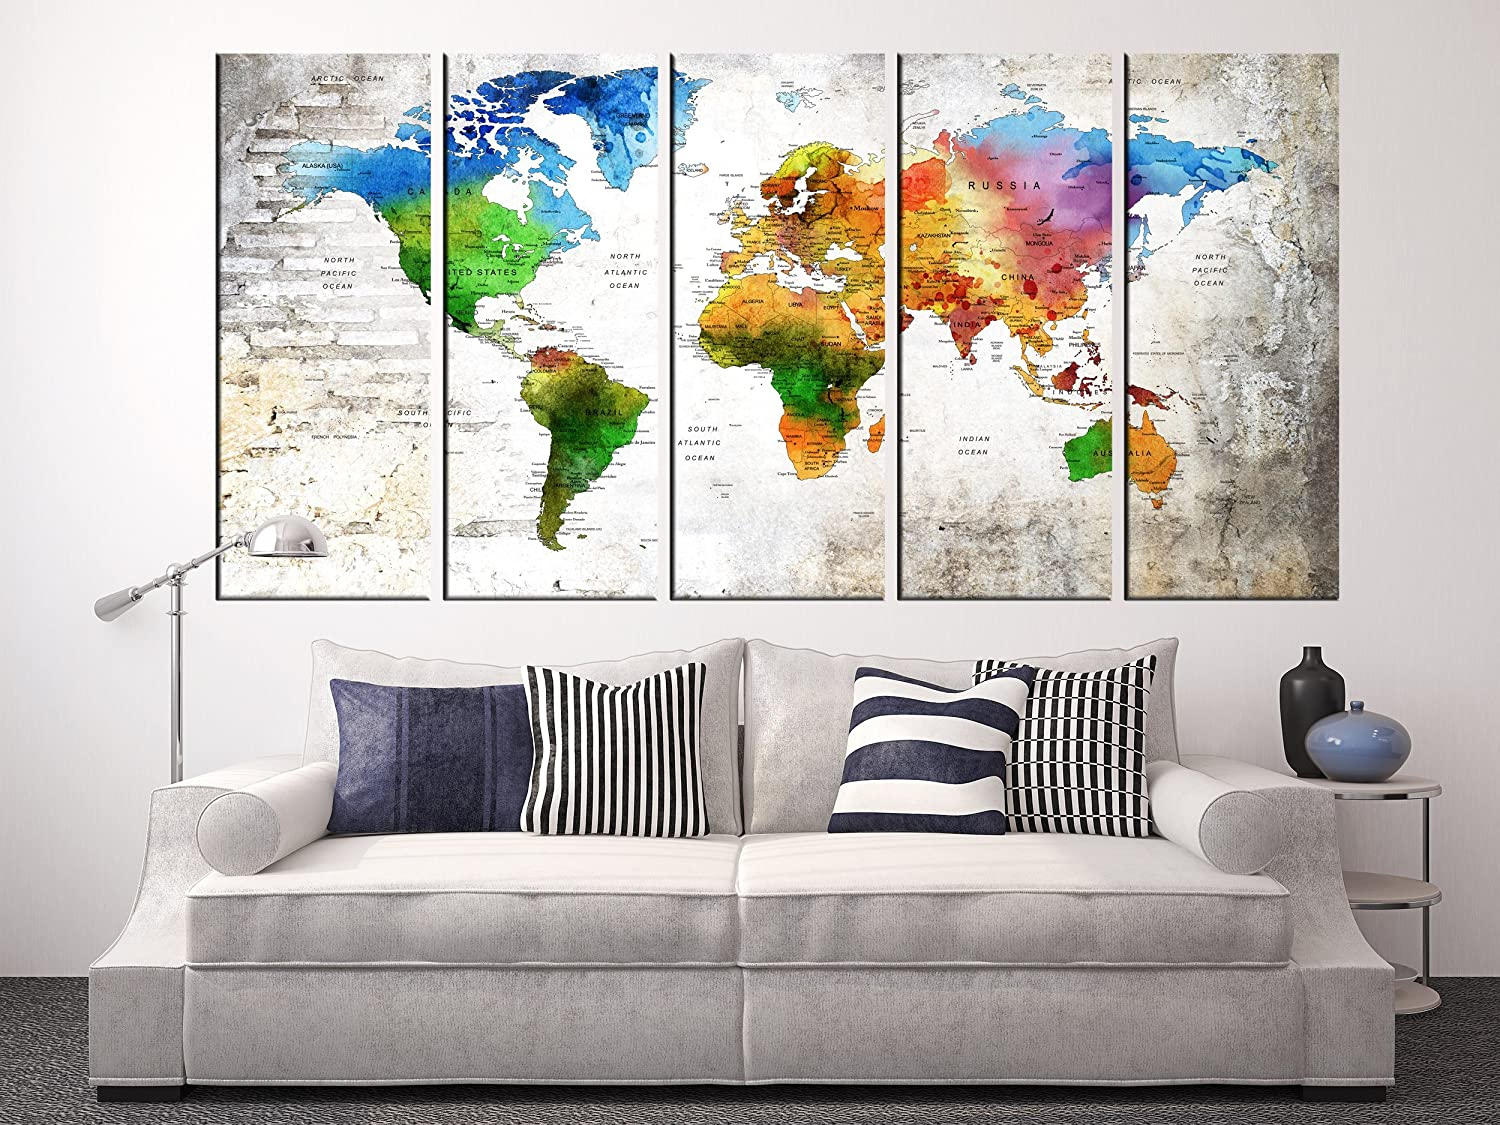 Amazon.com: Canvas Wall Art Decals, Watercolor World Map for ...